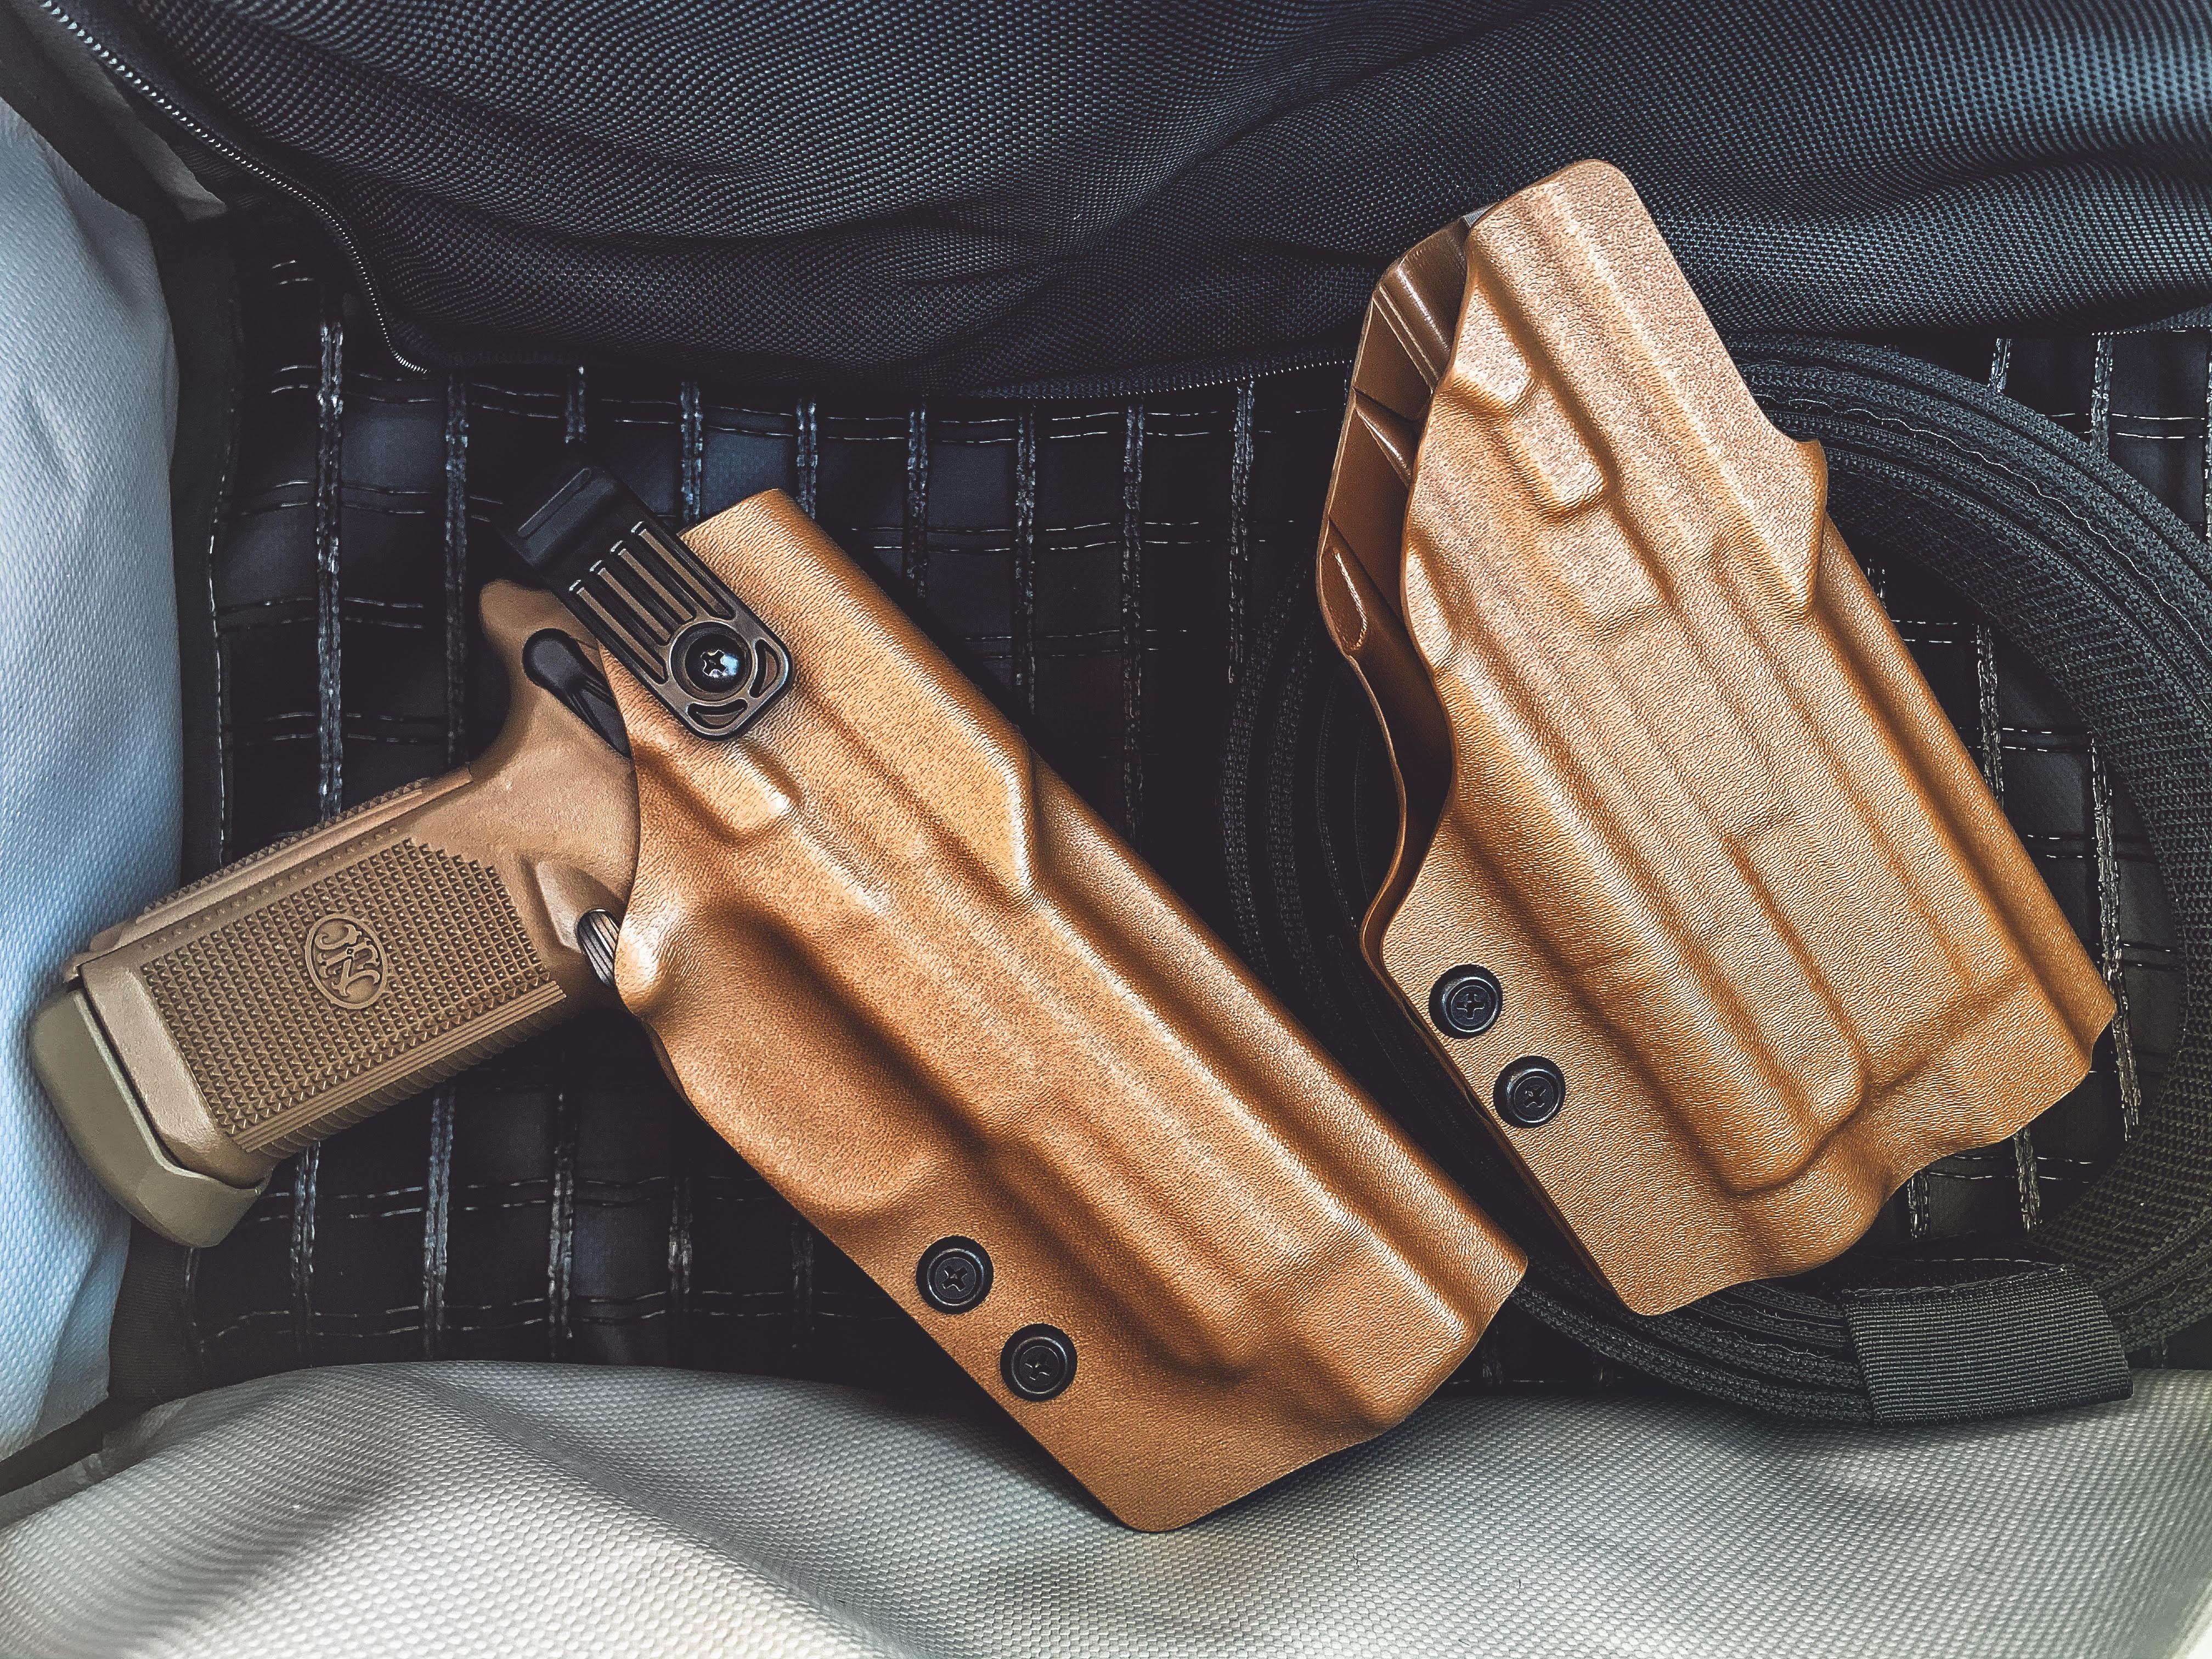 FNX-45 Duty Holster